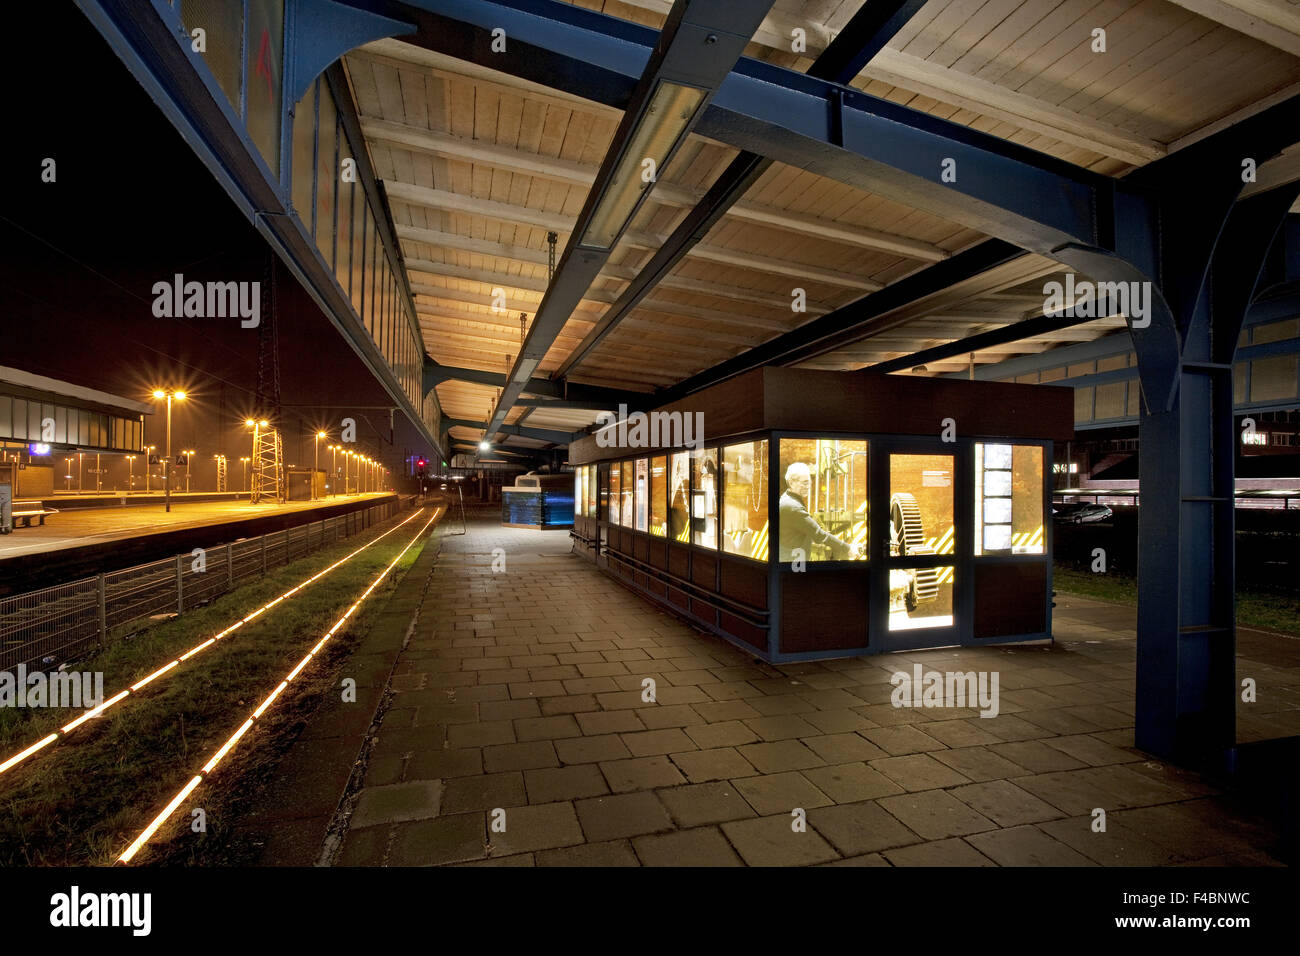 Museum platform Oberhausen central station. - Stock Image